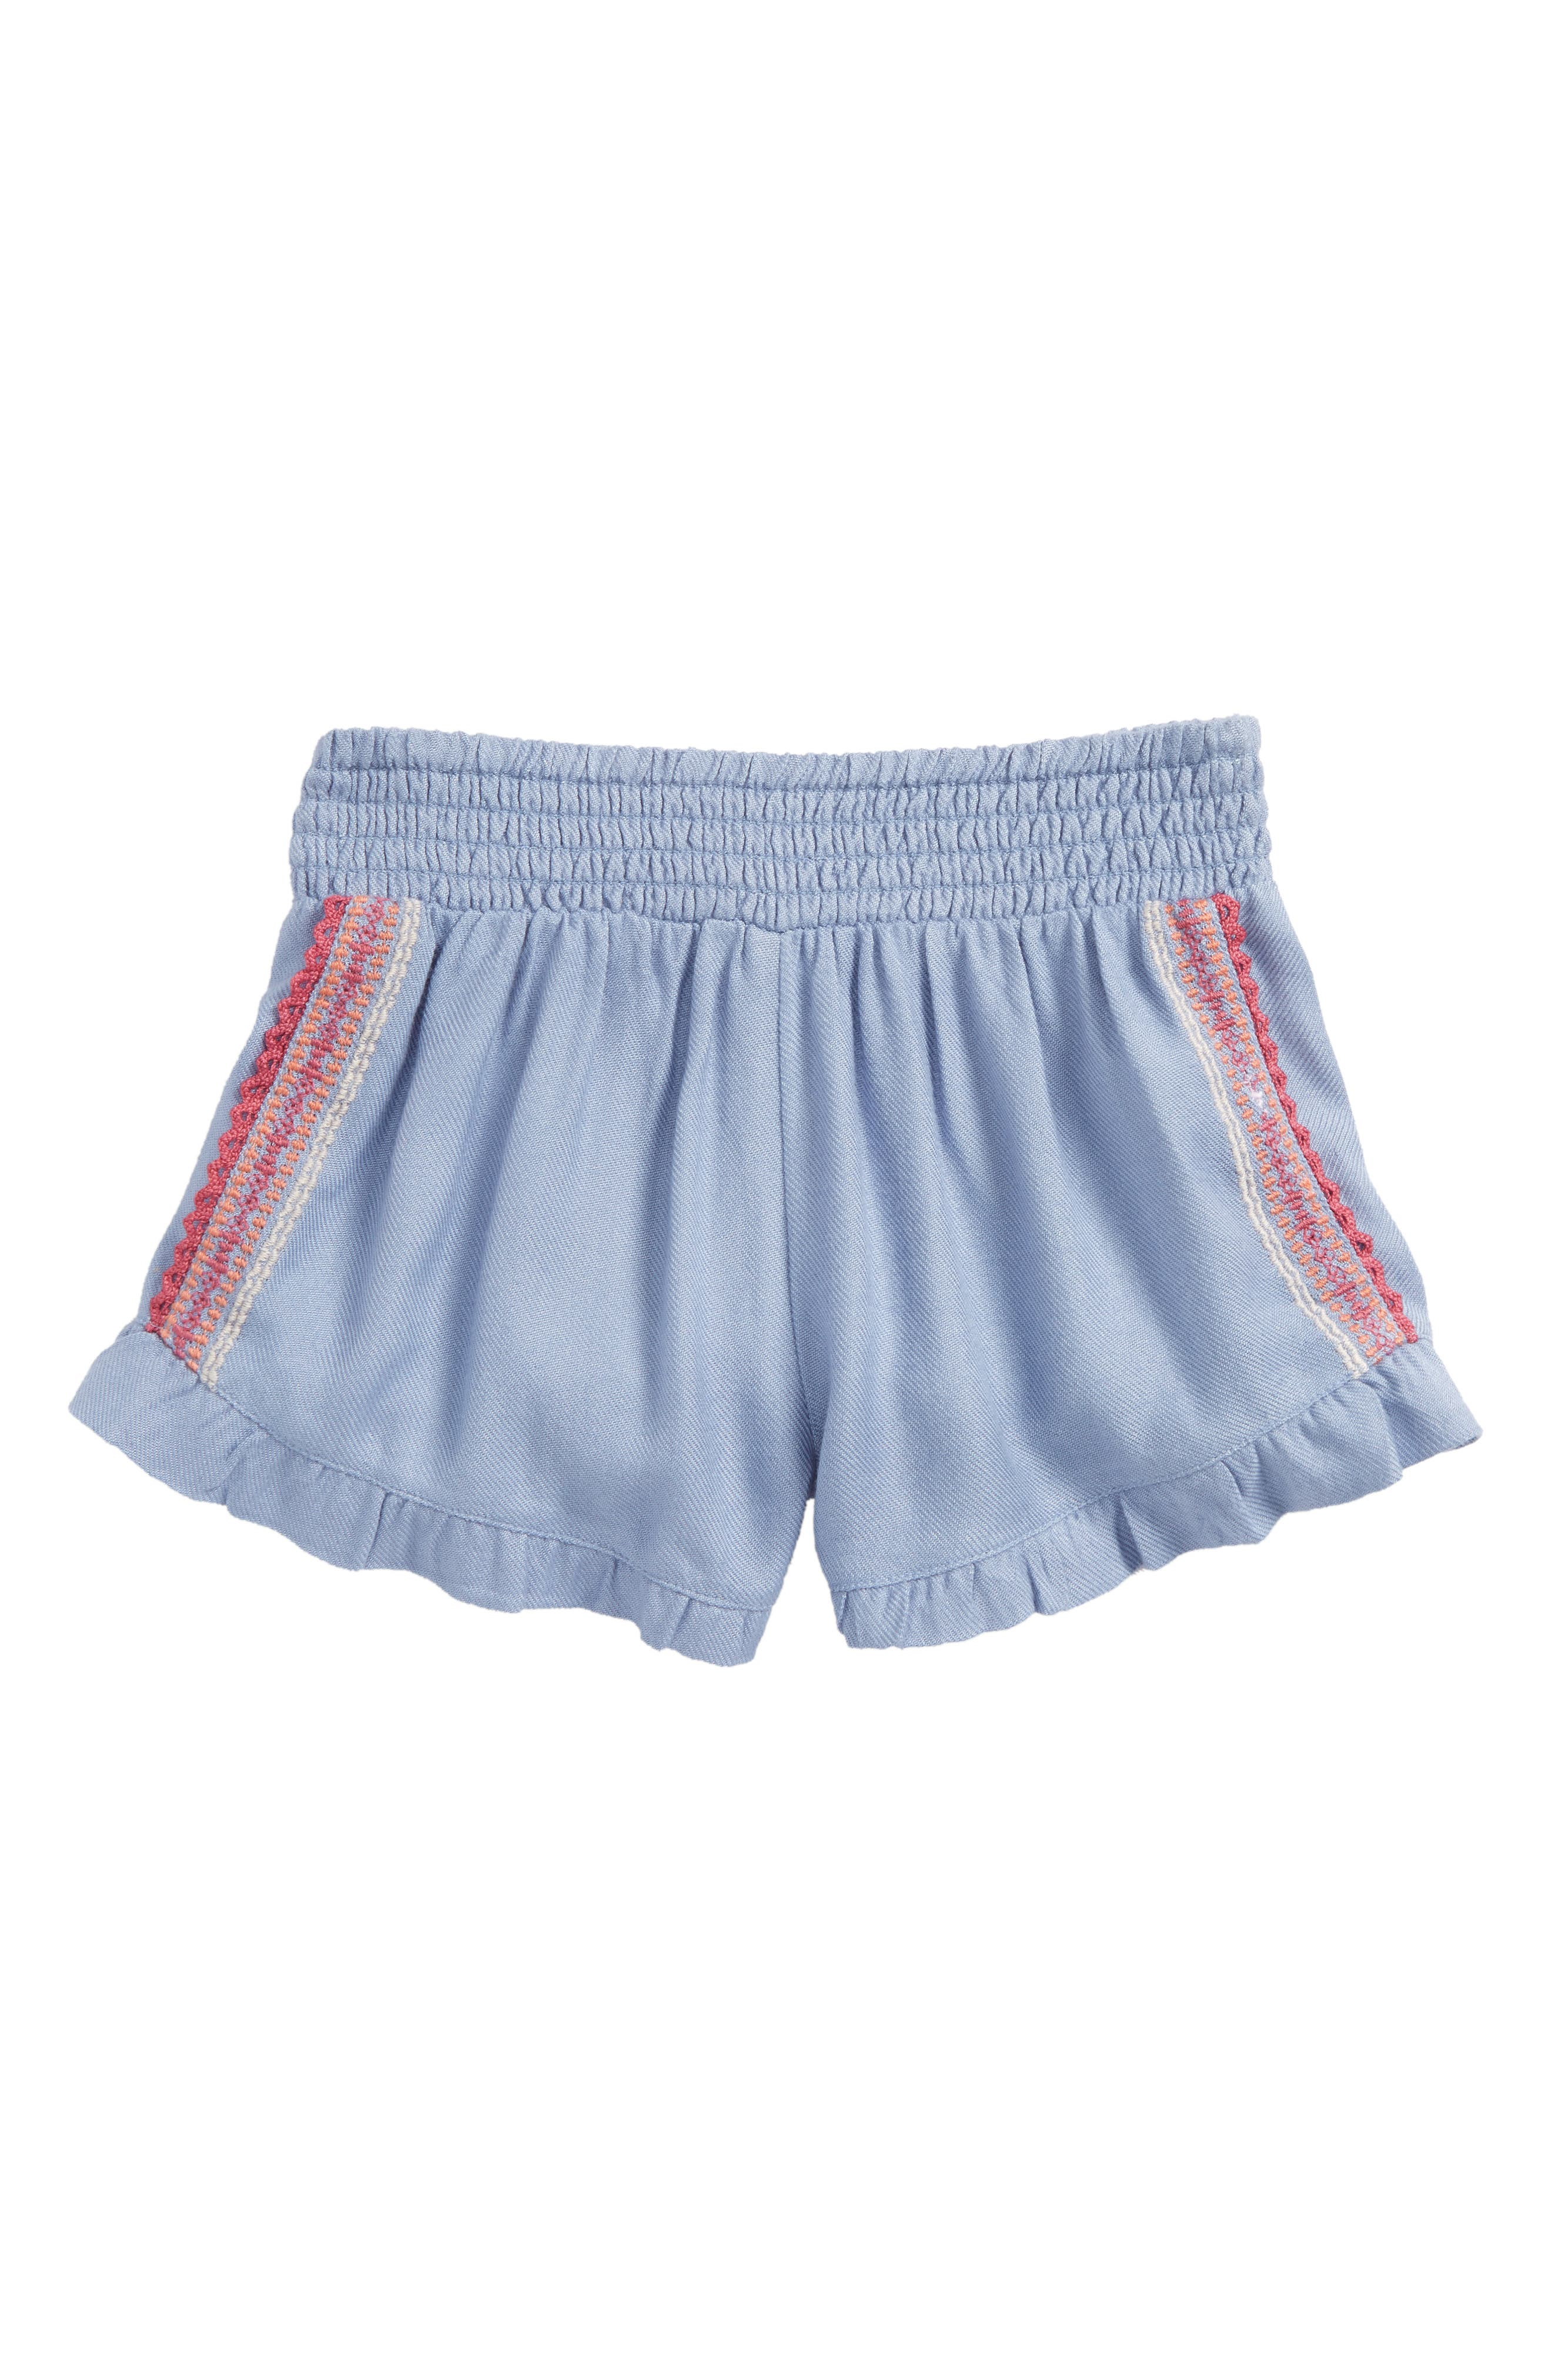 Bay Ruffle Shorts,                             Main thumbnail 1, color,                             Bleached Periwinkle